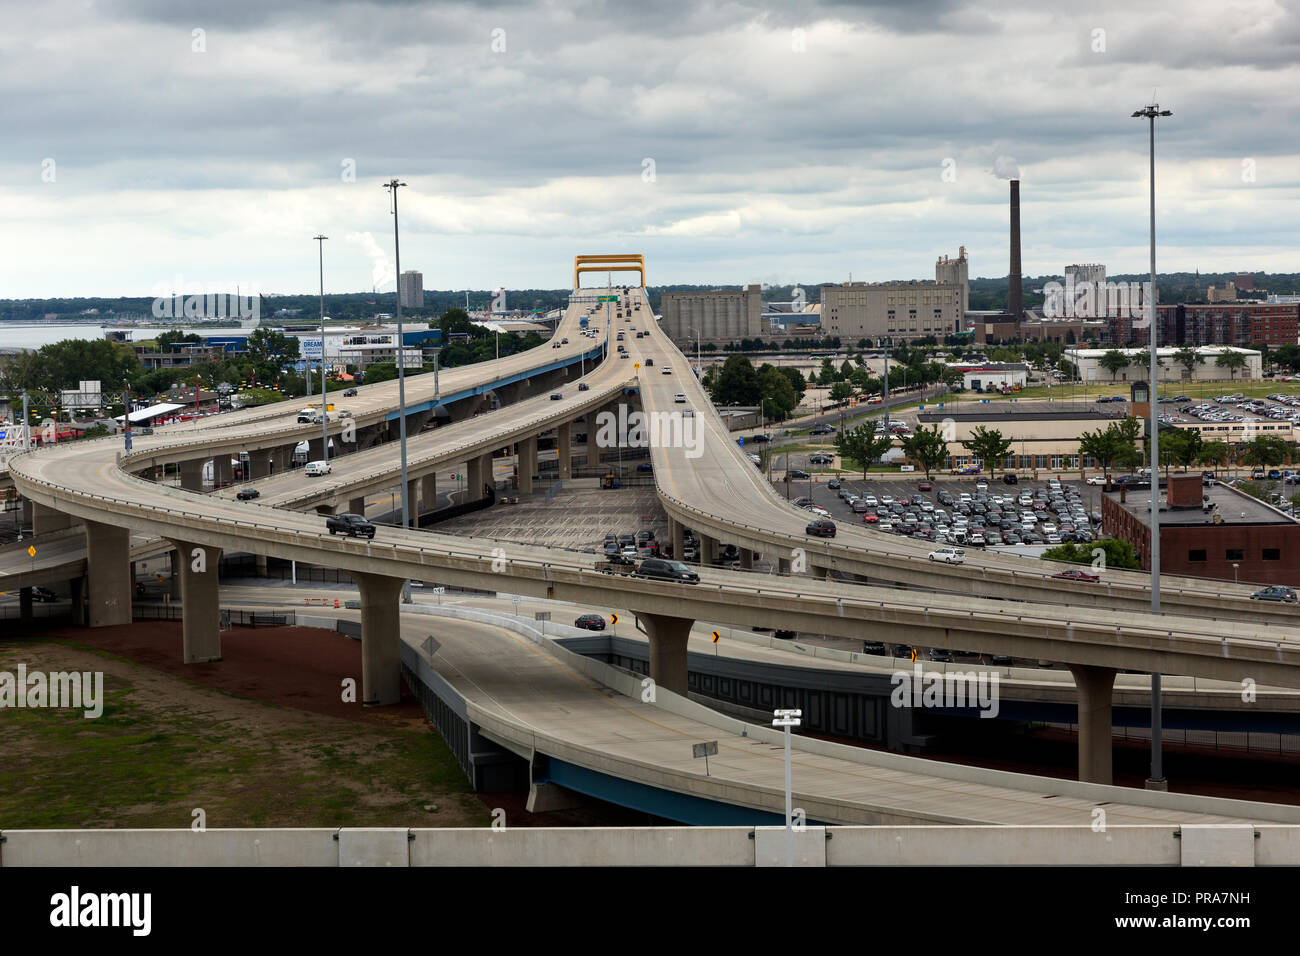 View of the Daniel Hoan Memorial Bridge that connects Interstate 794 in downtown Milwaukee, Wisconsin, to the Lake Freeway across the Milwaukee - Stock Image